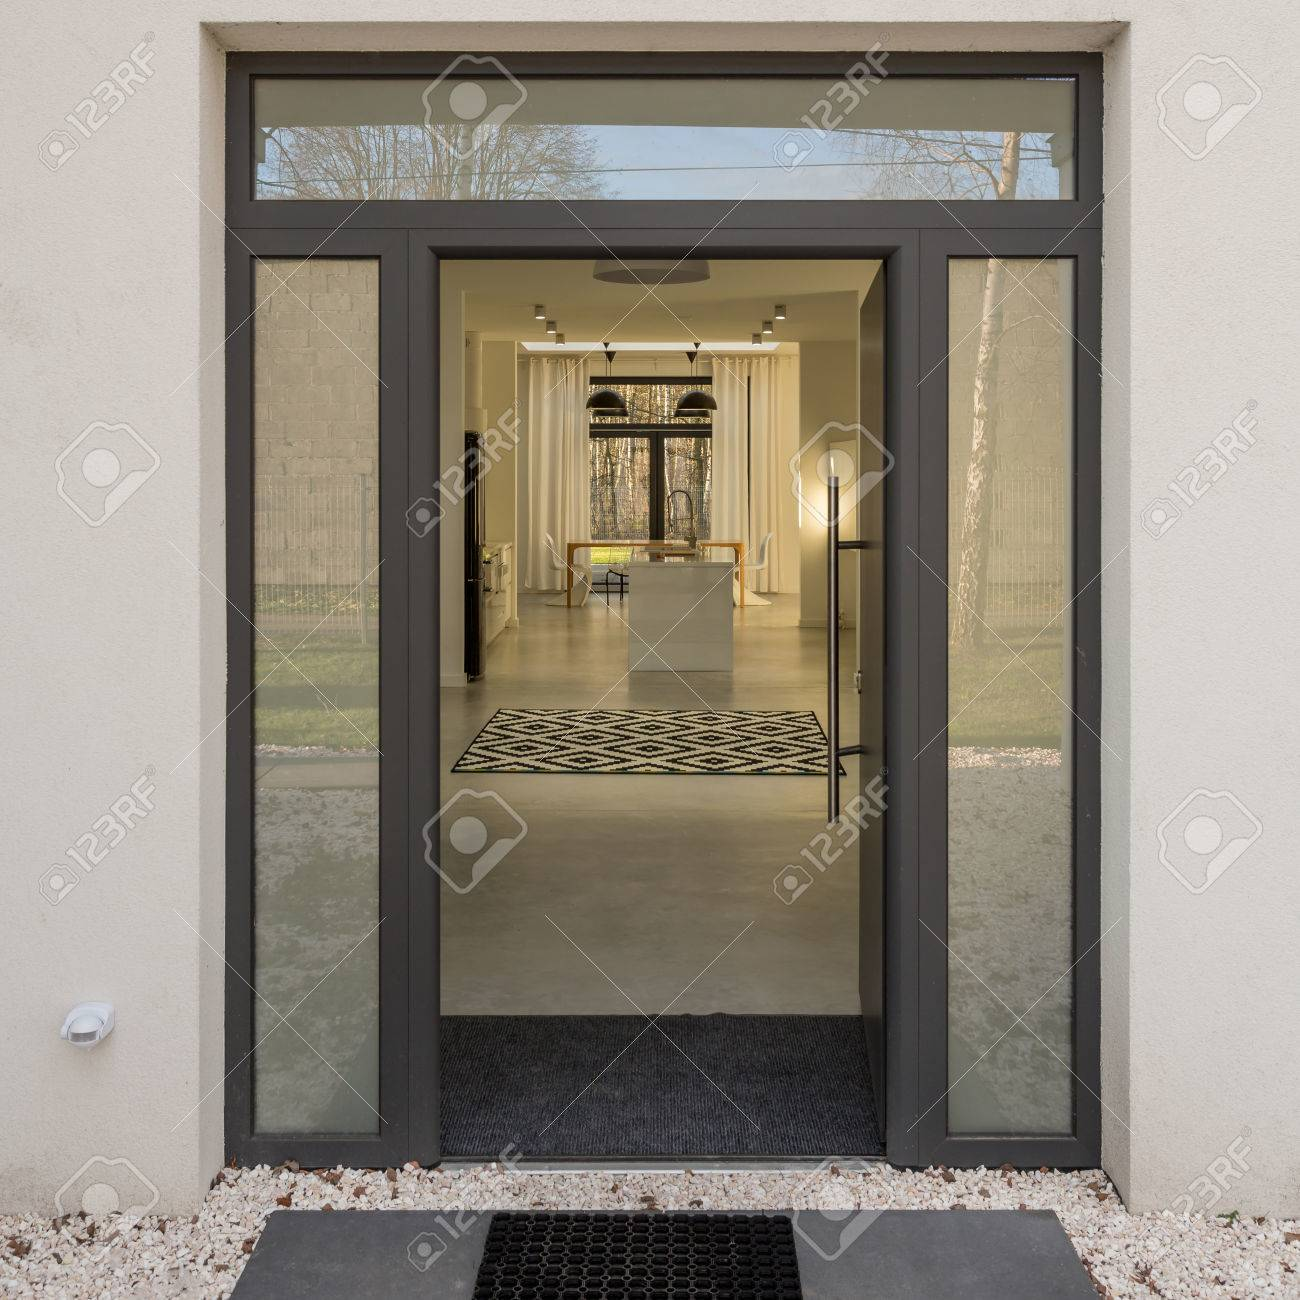 Simple And Modern Glass Door Entrance To Elegant House Stock Photo Picture And Royalty Free Image Image 79459215